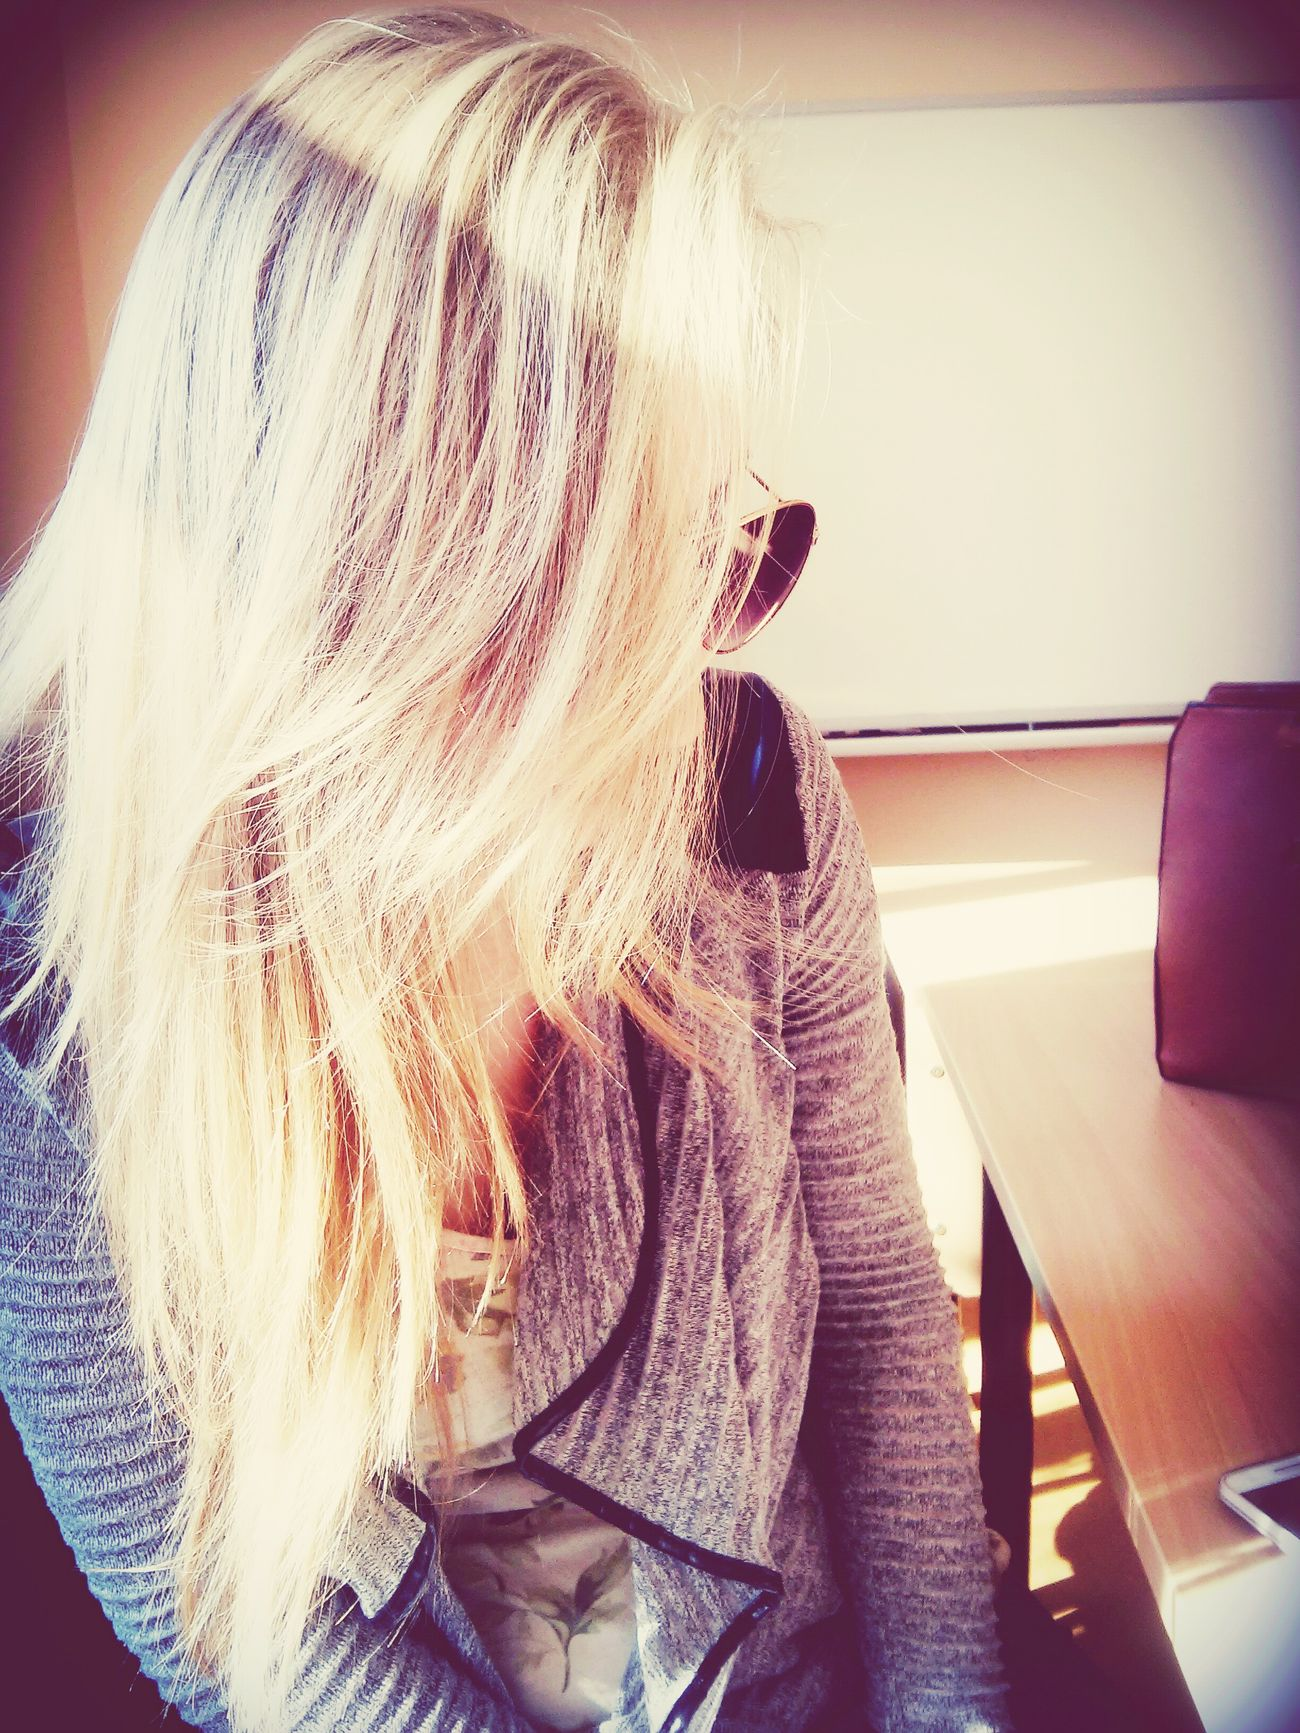 Blond Blonde Girl Blonde Hair Sunday Sunny☀ School Lithuaniagirl Friends ❤ Relaxing Taking Photos